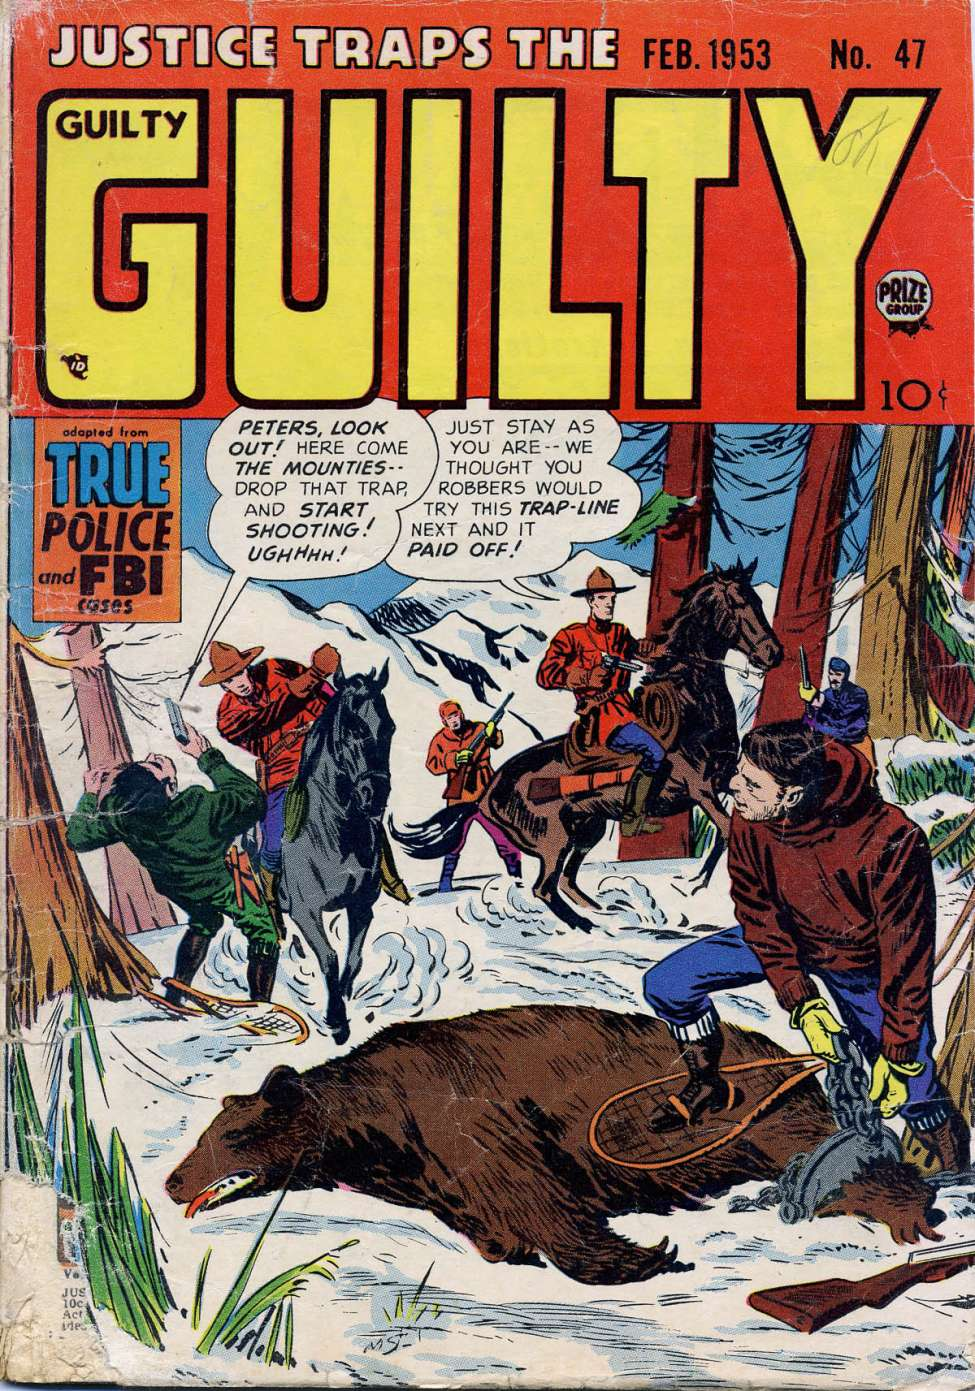 Comic Book Cover For Justice Traps the Guilty v6 5 (47)